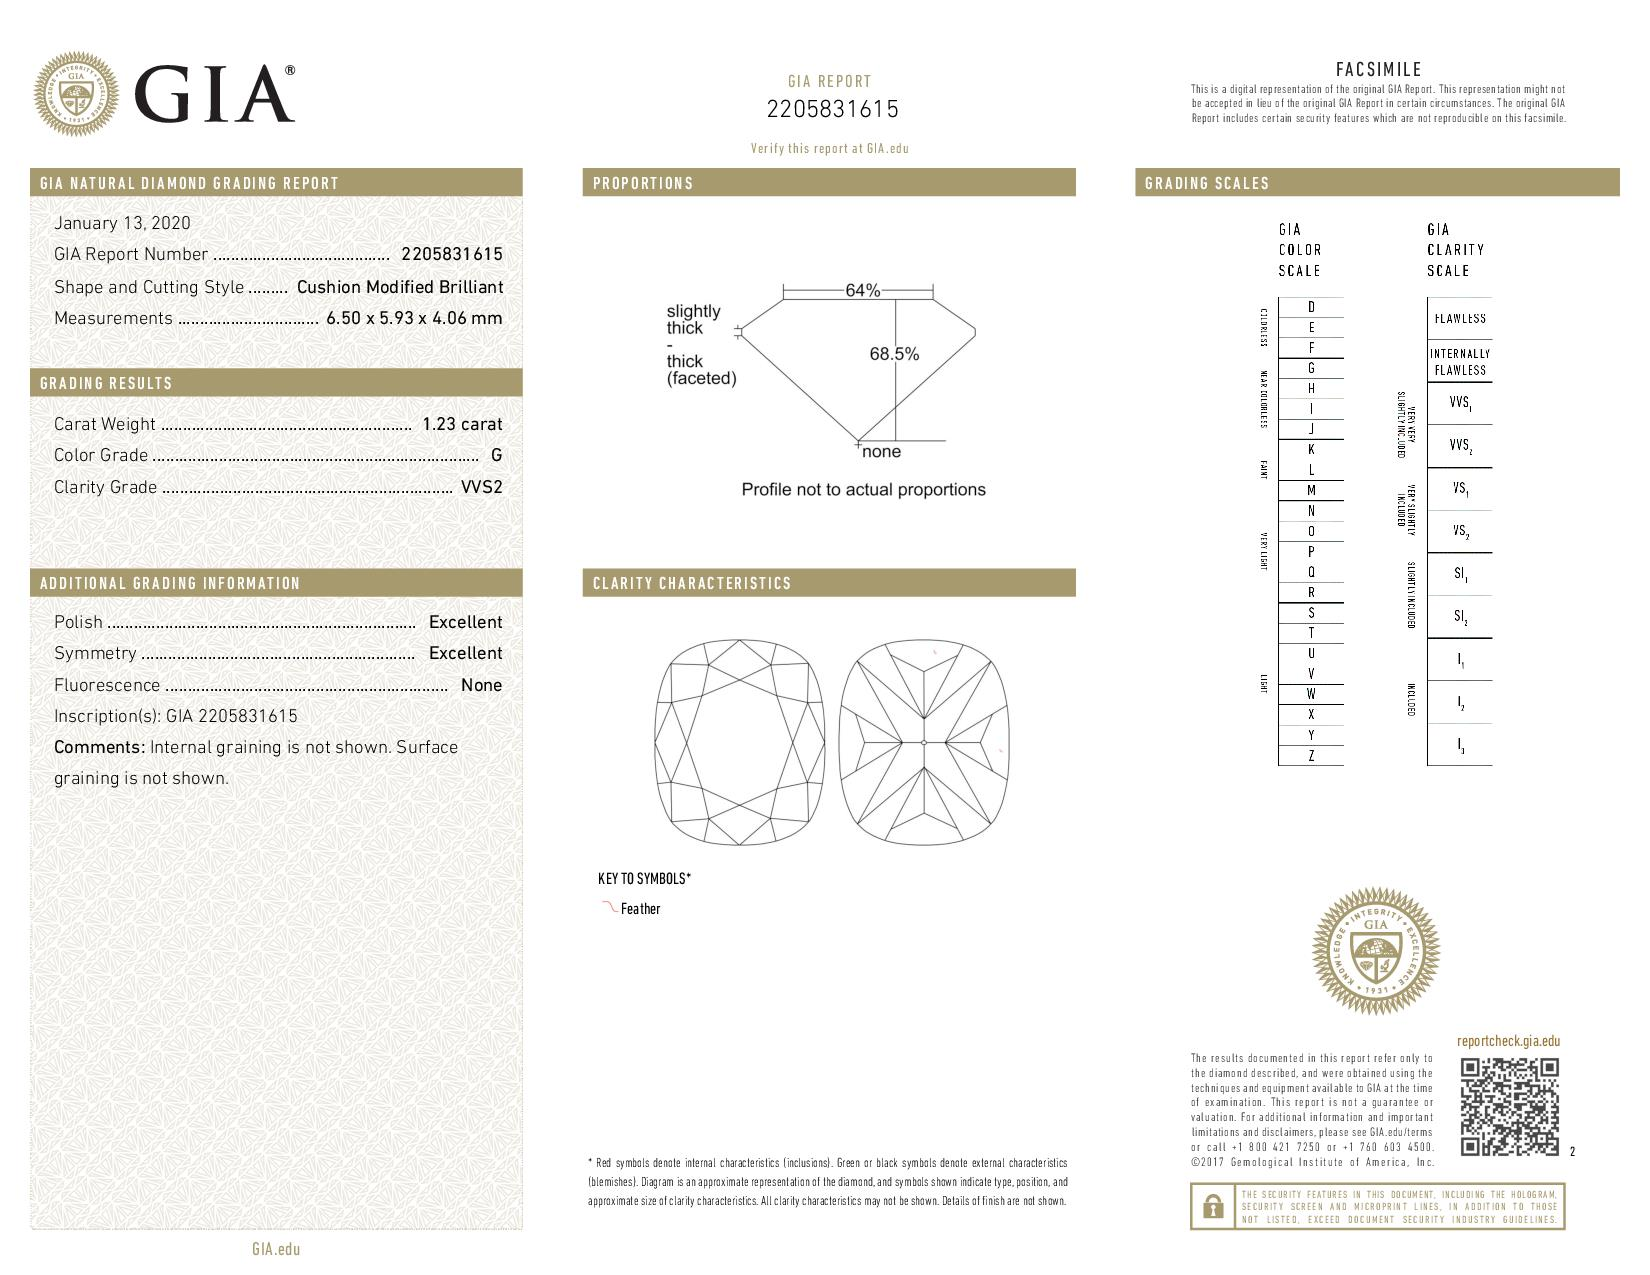 This is a 1.23 carat cushion shape, G color, VVS2 clarity natural diamond accompanied by a GIA grading report.